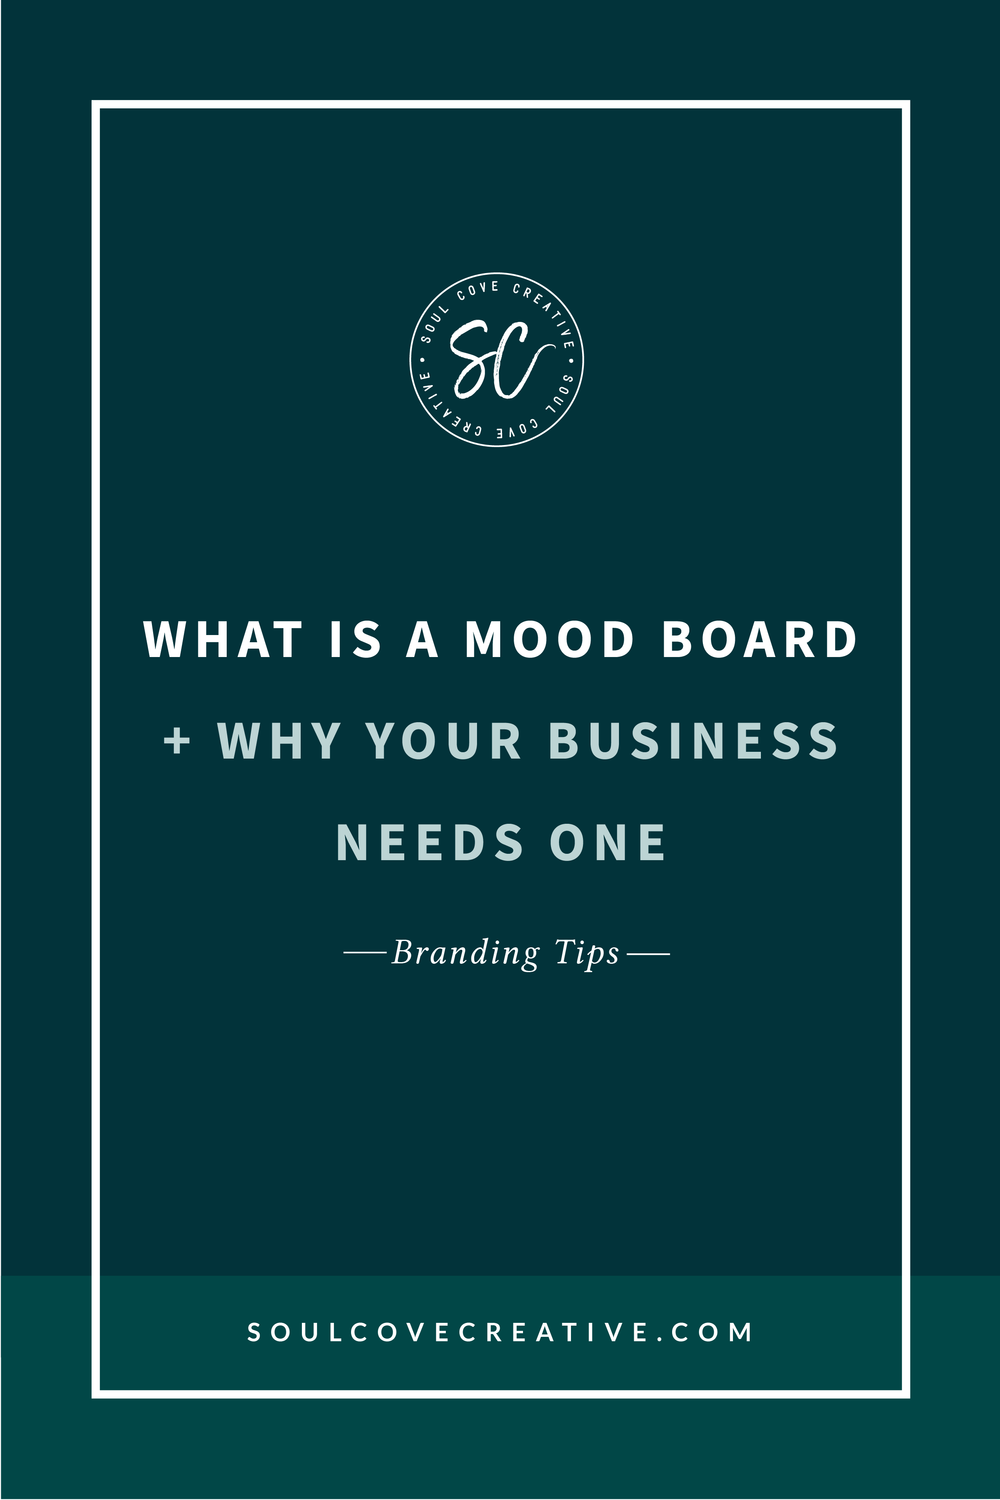 What are Mood Boards + Why Your Business Needs One